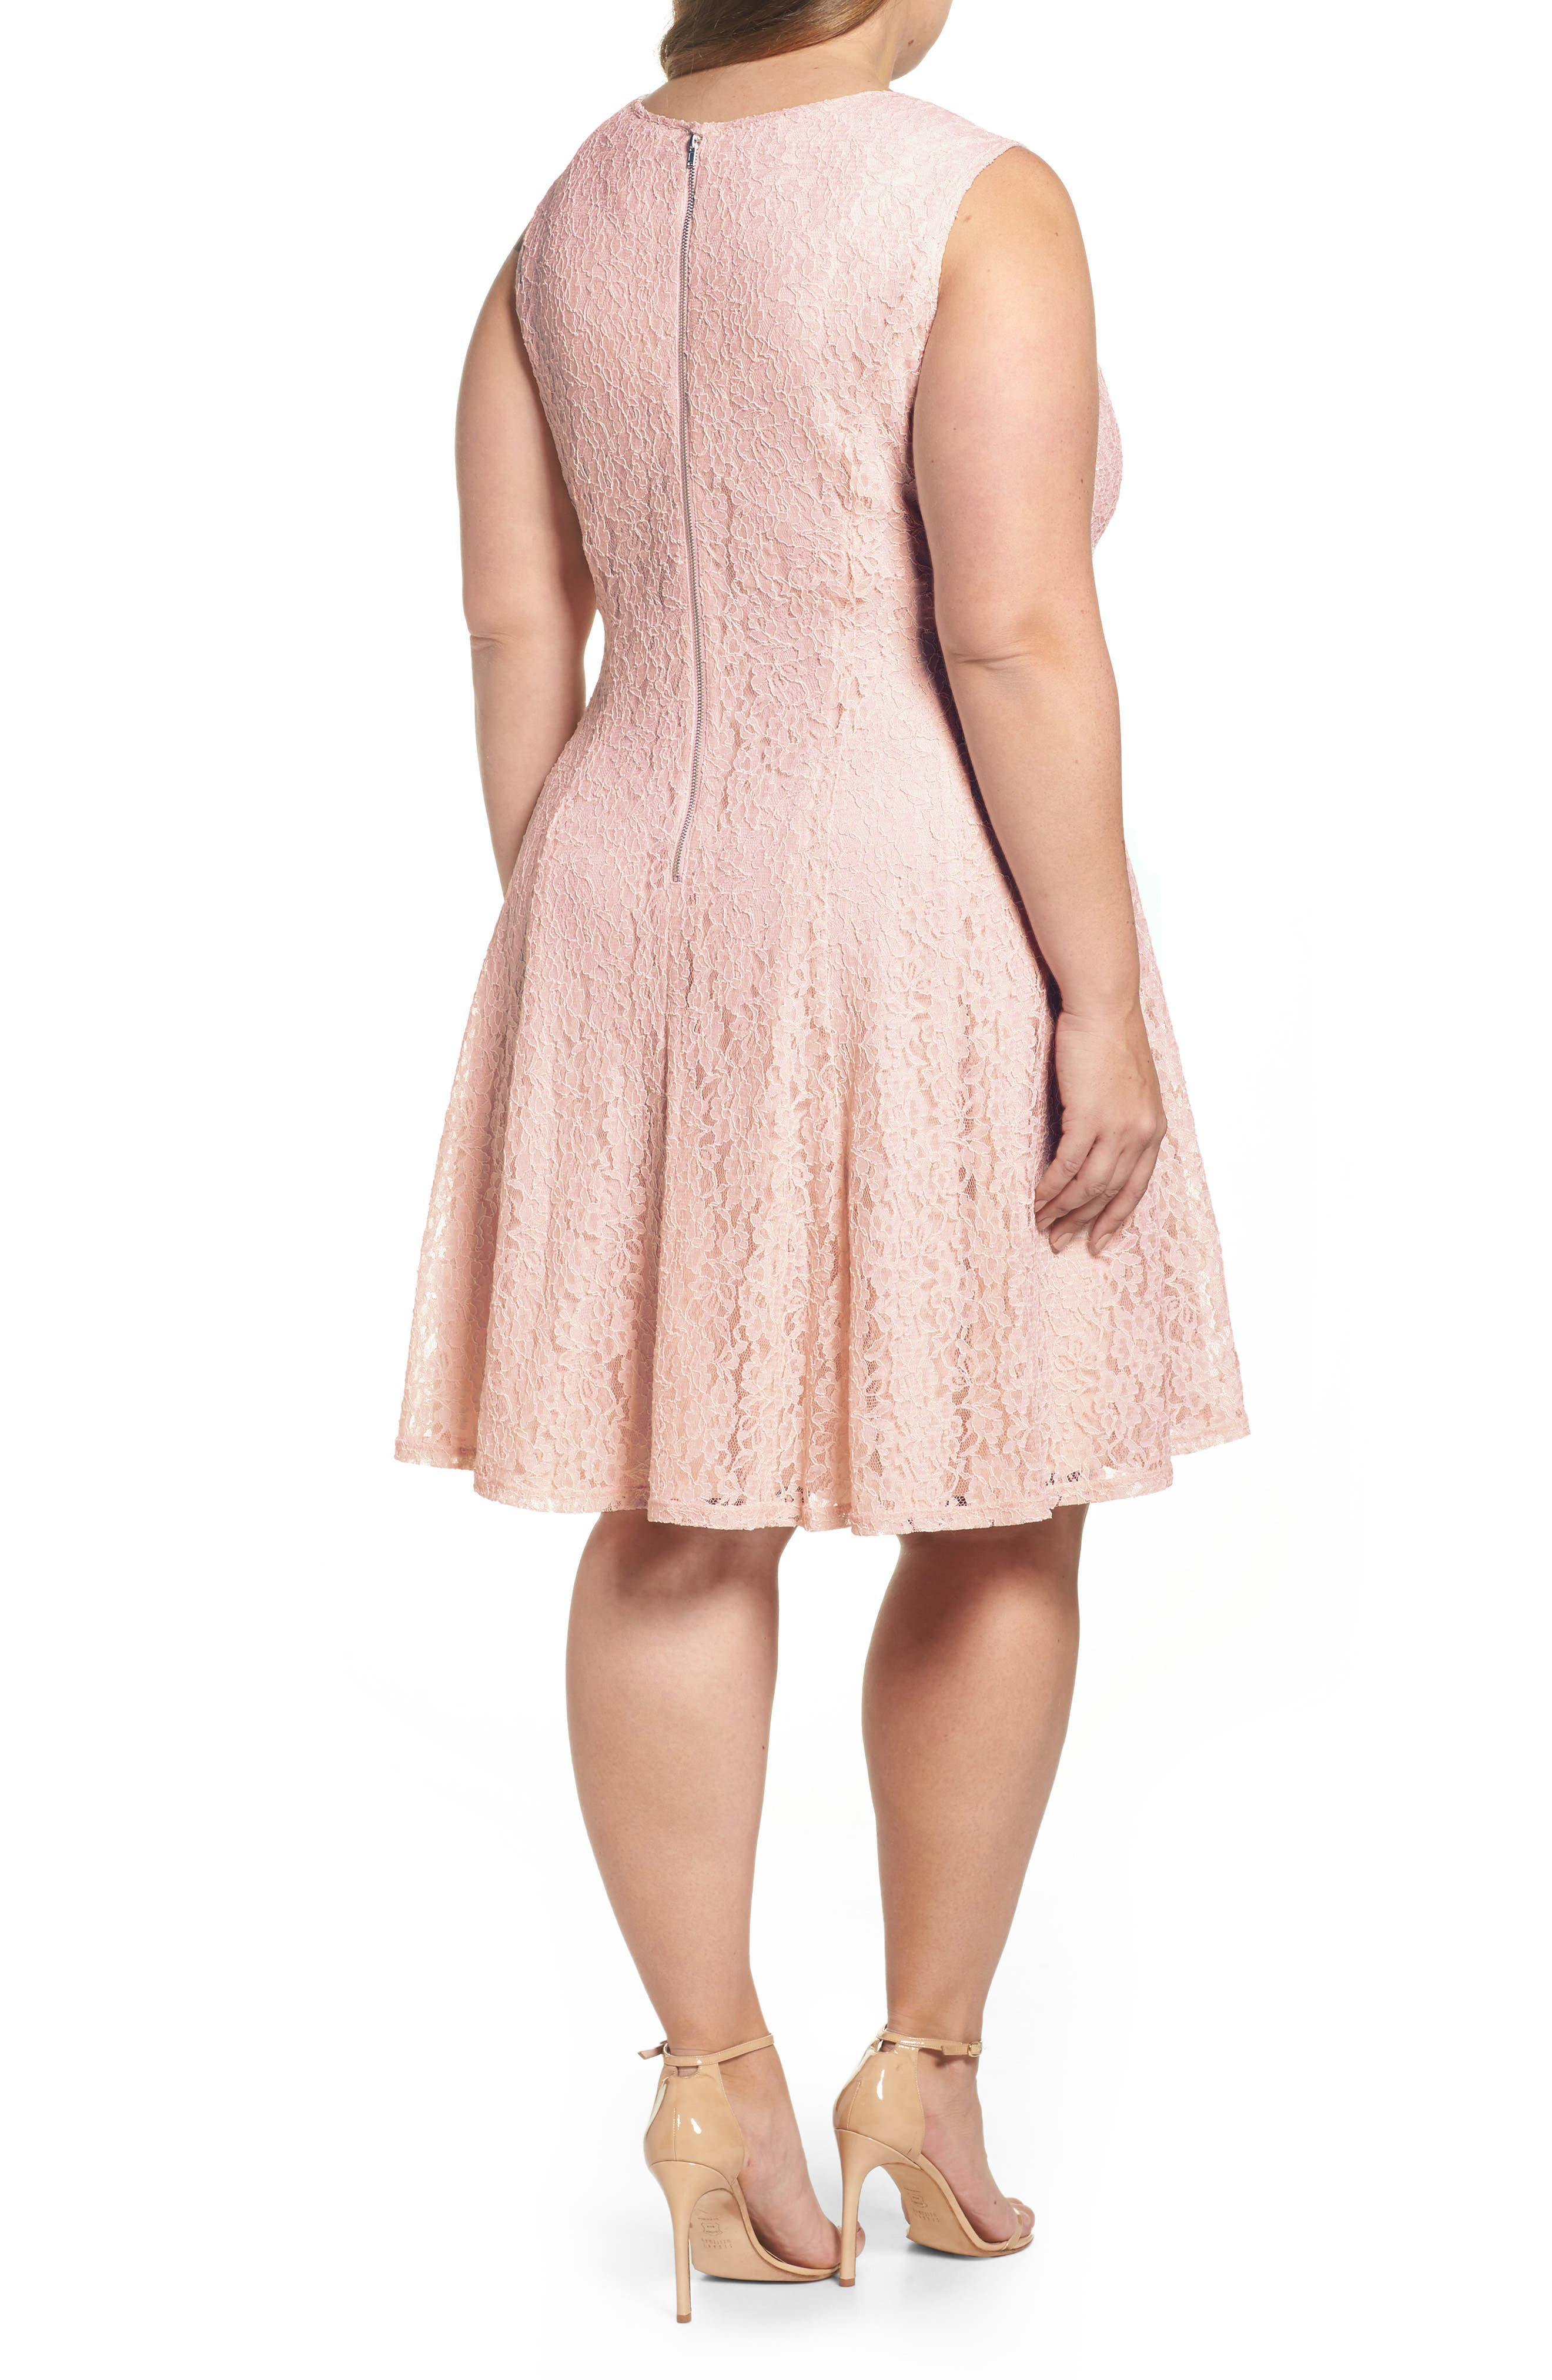 Lace Teardrop Cutout Fit and Flare Dress,                             Alternate thumbnail 2, color,                             Pink/ Pink